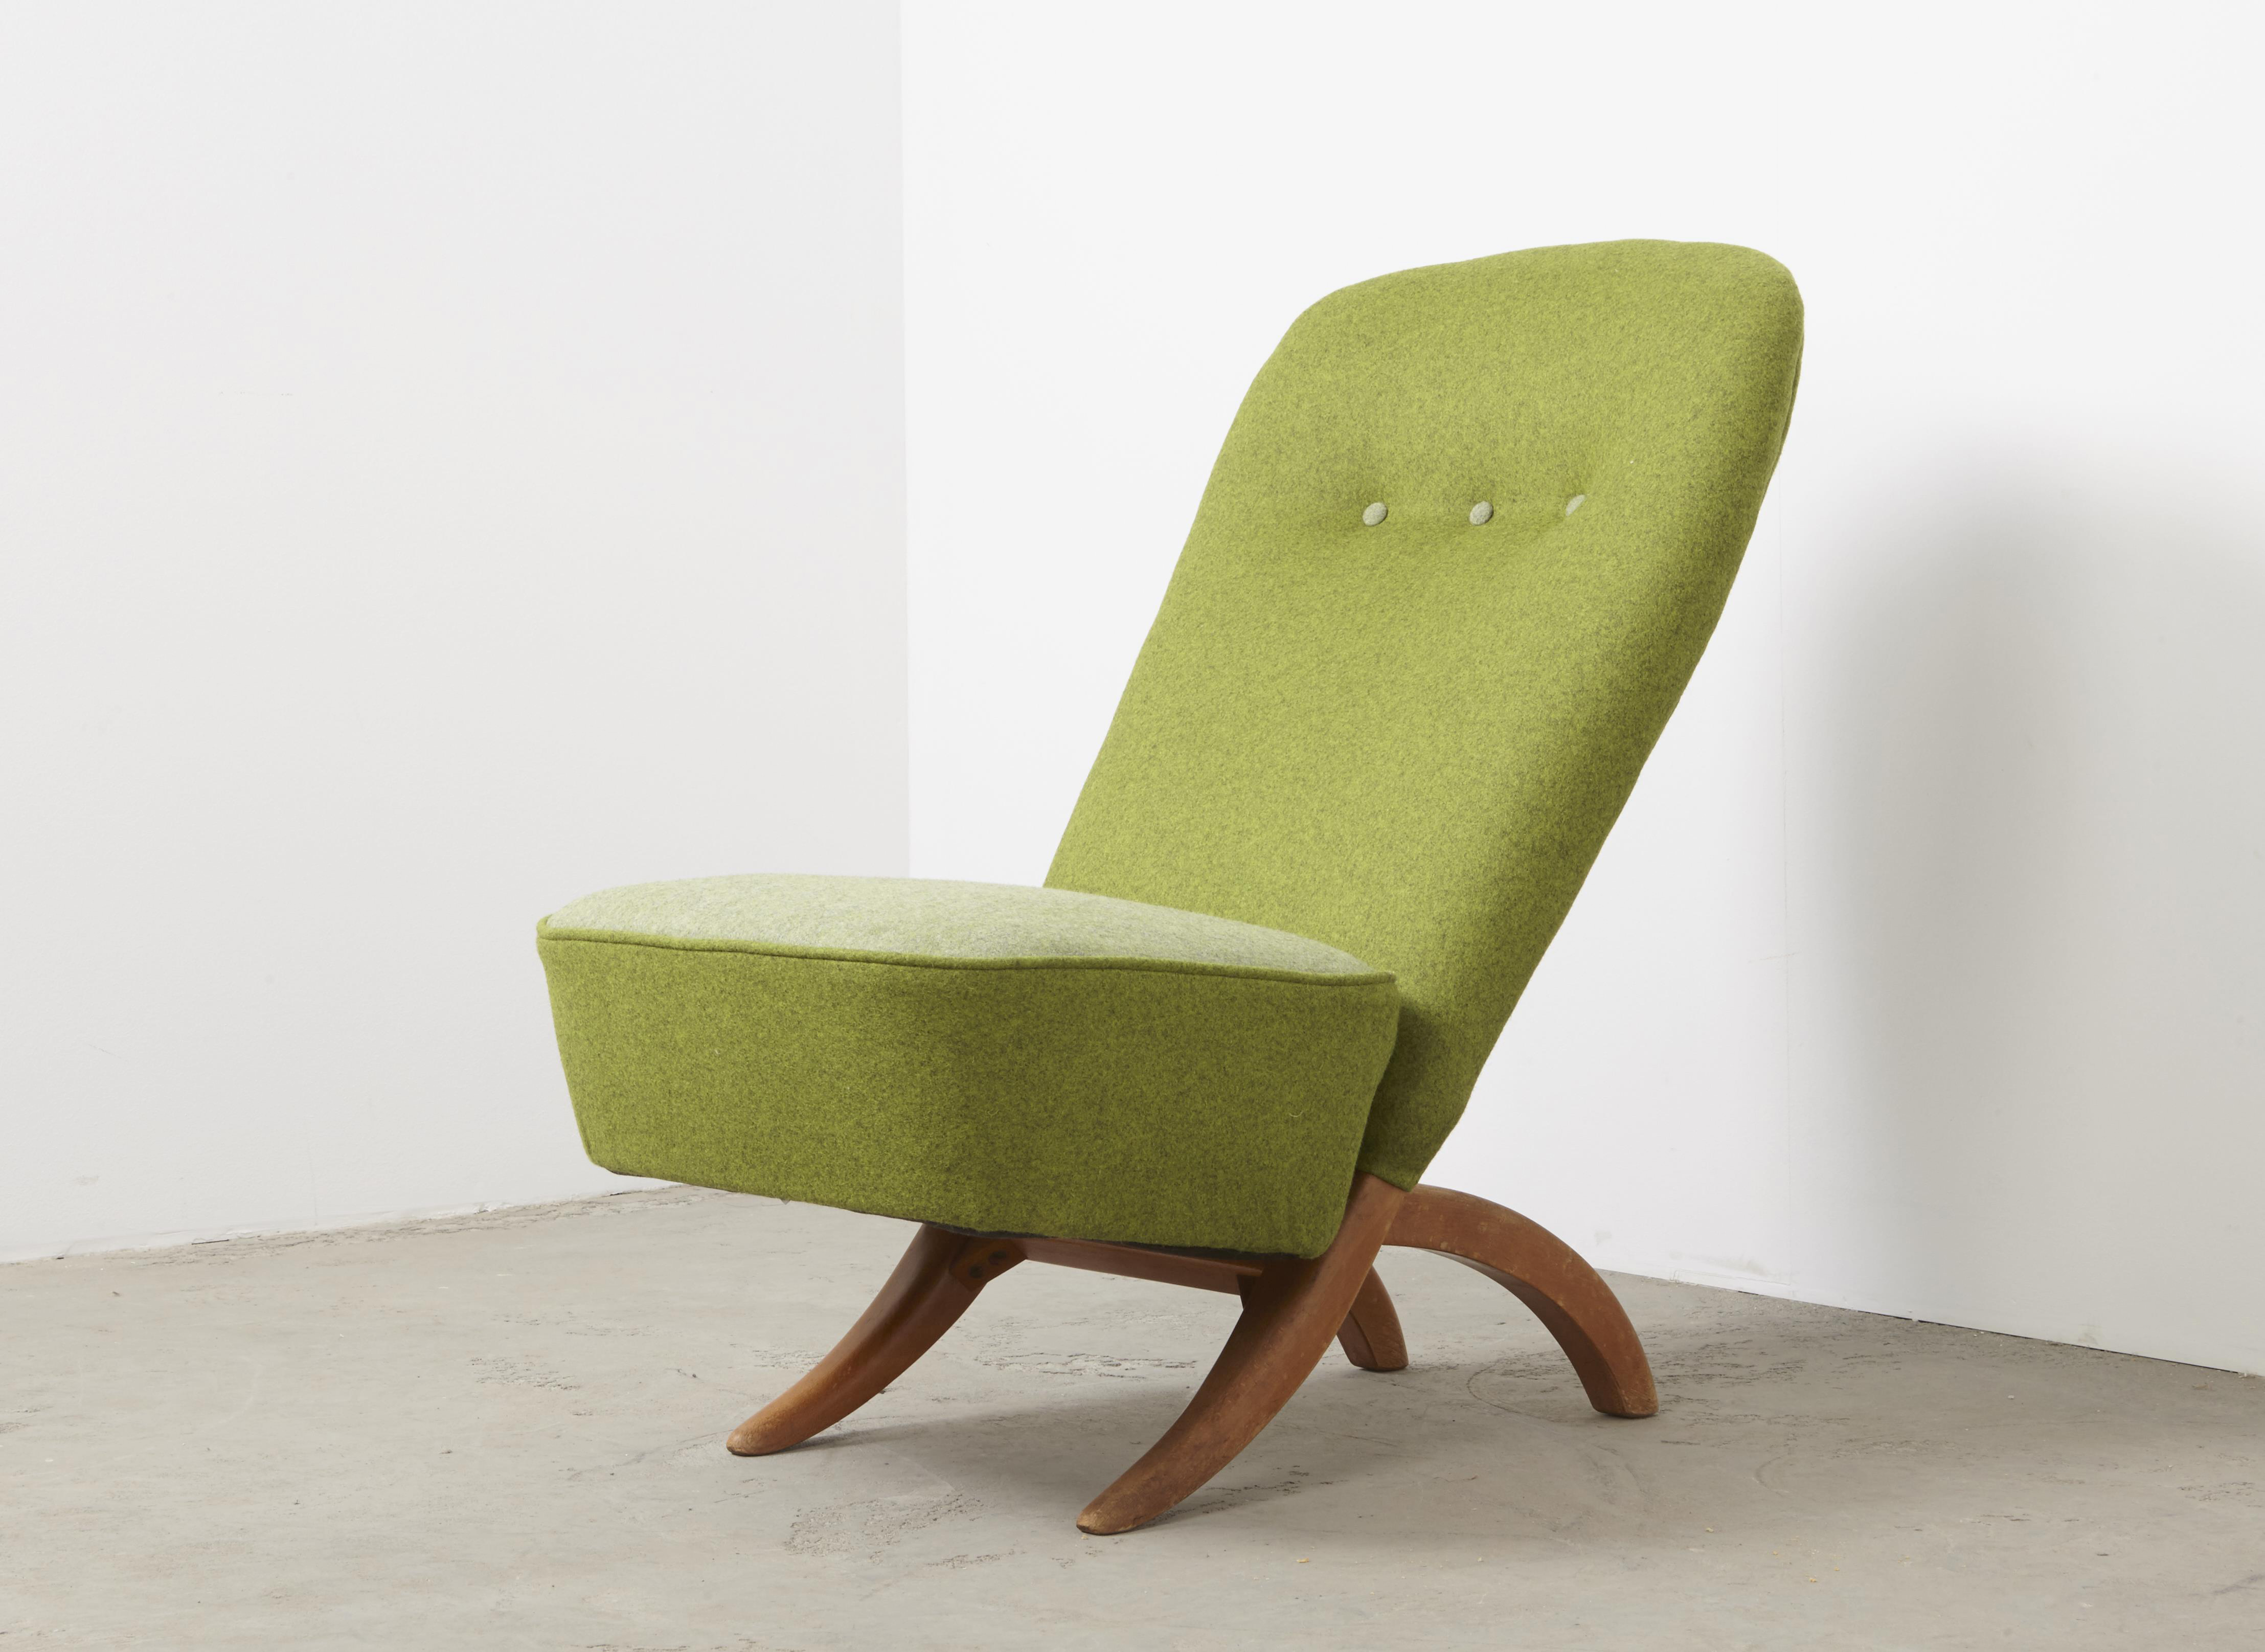 Theo Ruth 'Congo' Lounge Chair Artifort 1952